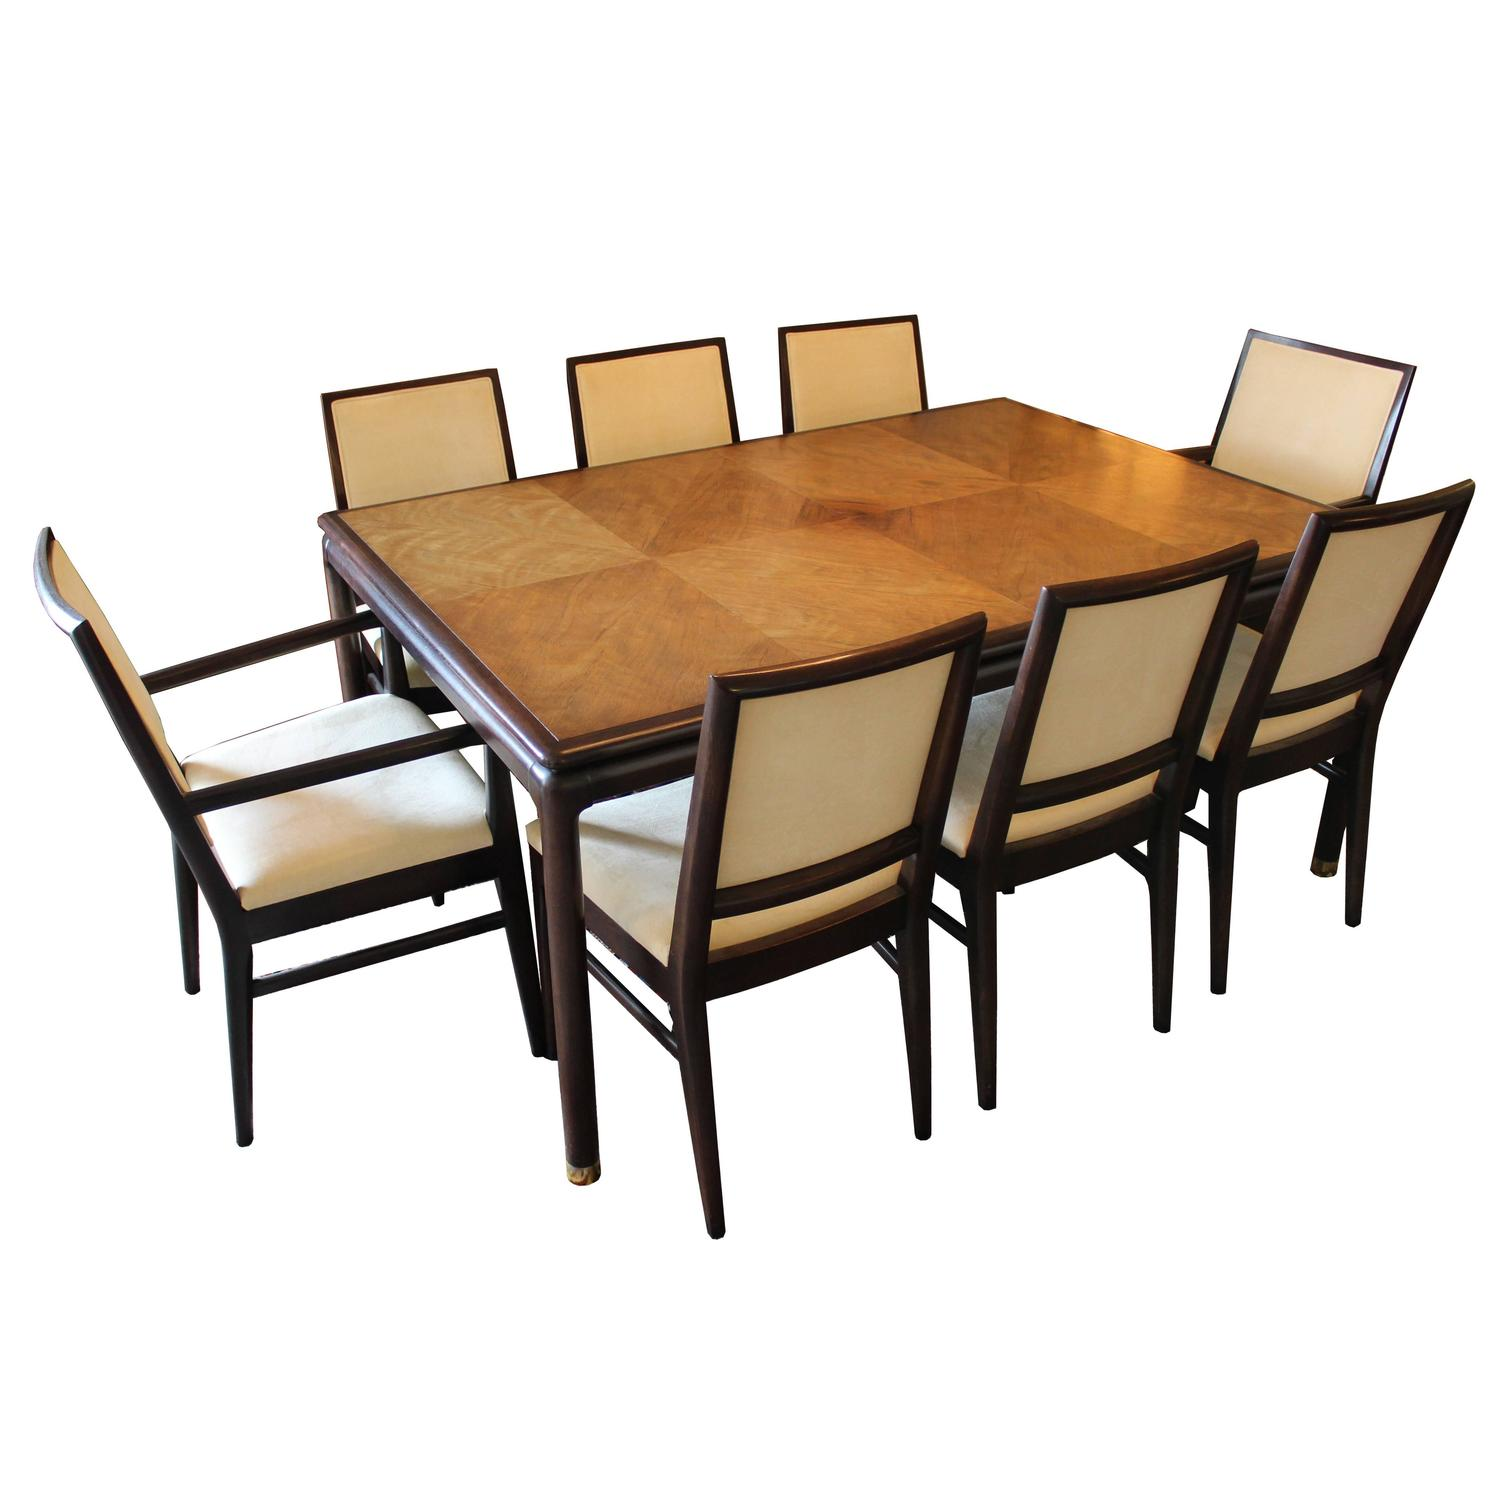 Mount airy dining room set of two leaves and eight chairs for Dining room sets with leaf